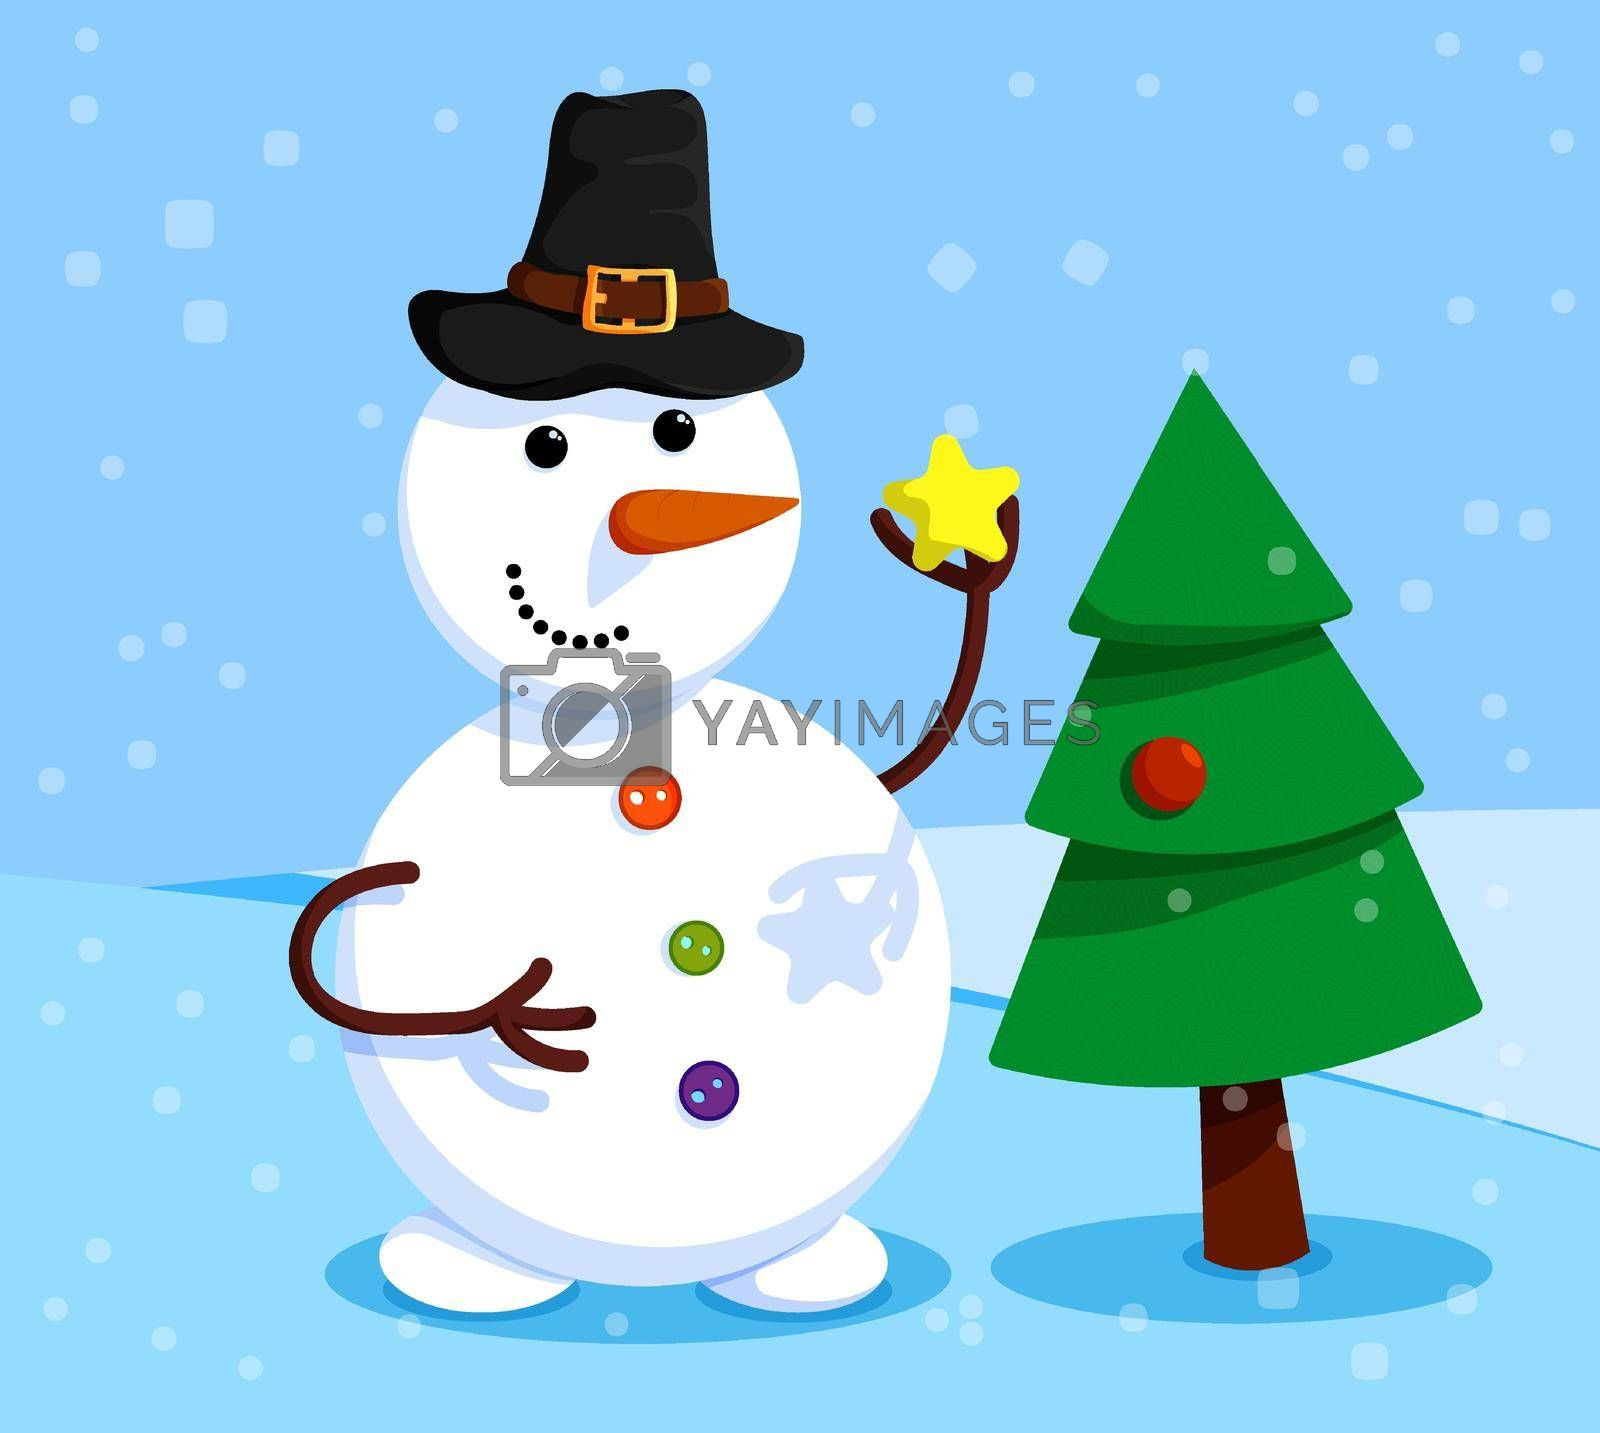 cheerful snowman is decorating the Christmas tree. Winter landscape and snowman. Meeting of Christmas and New Year. Winter fun. Cartoon vector